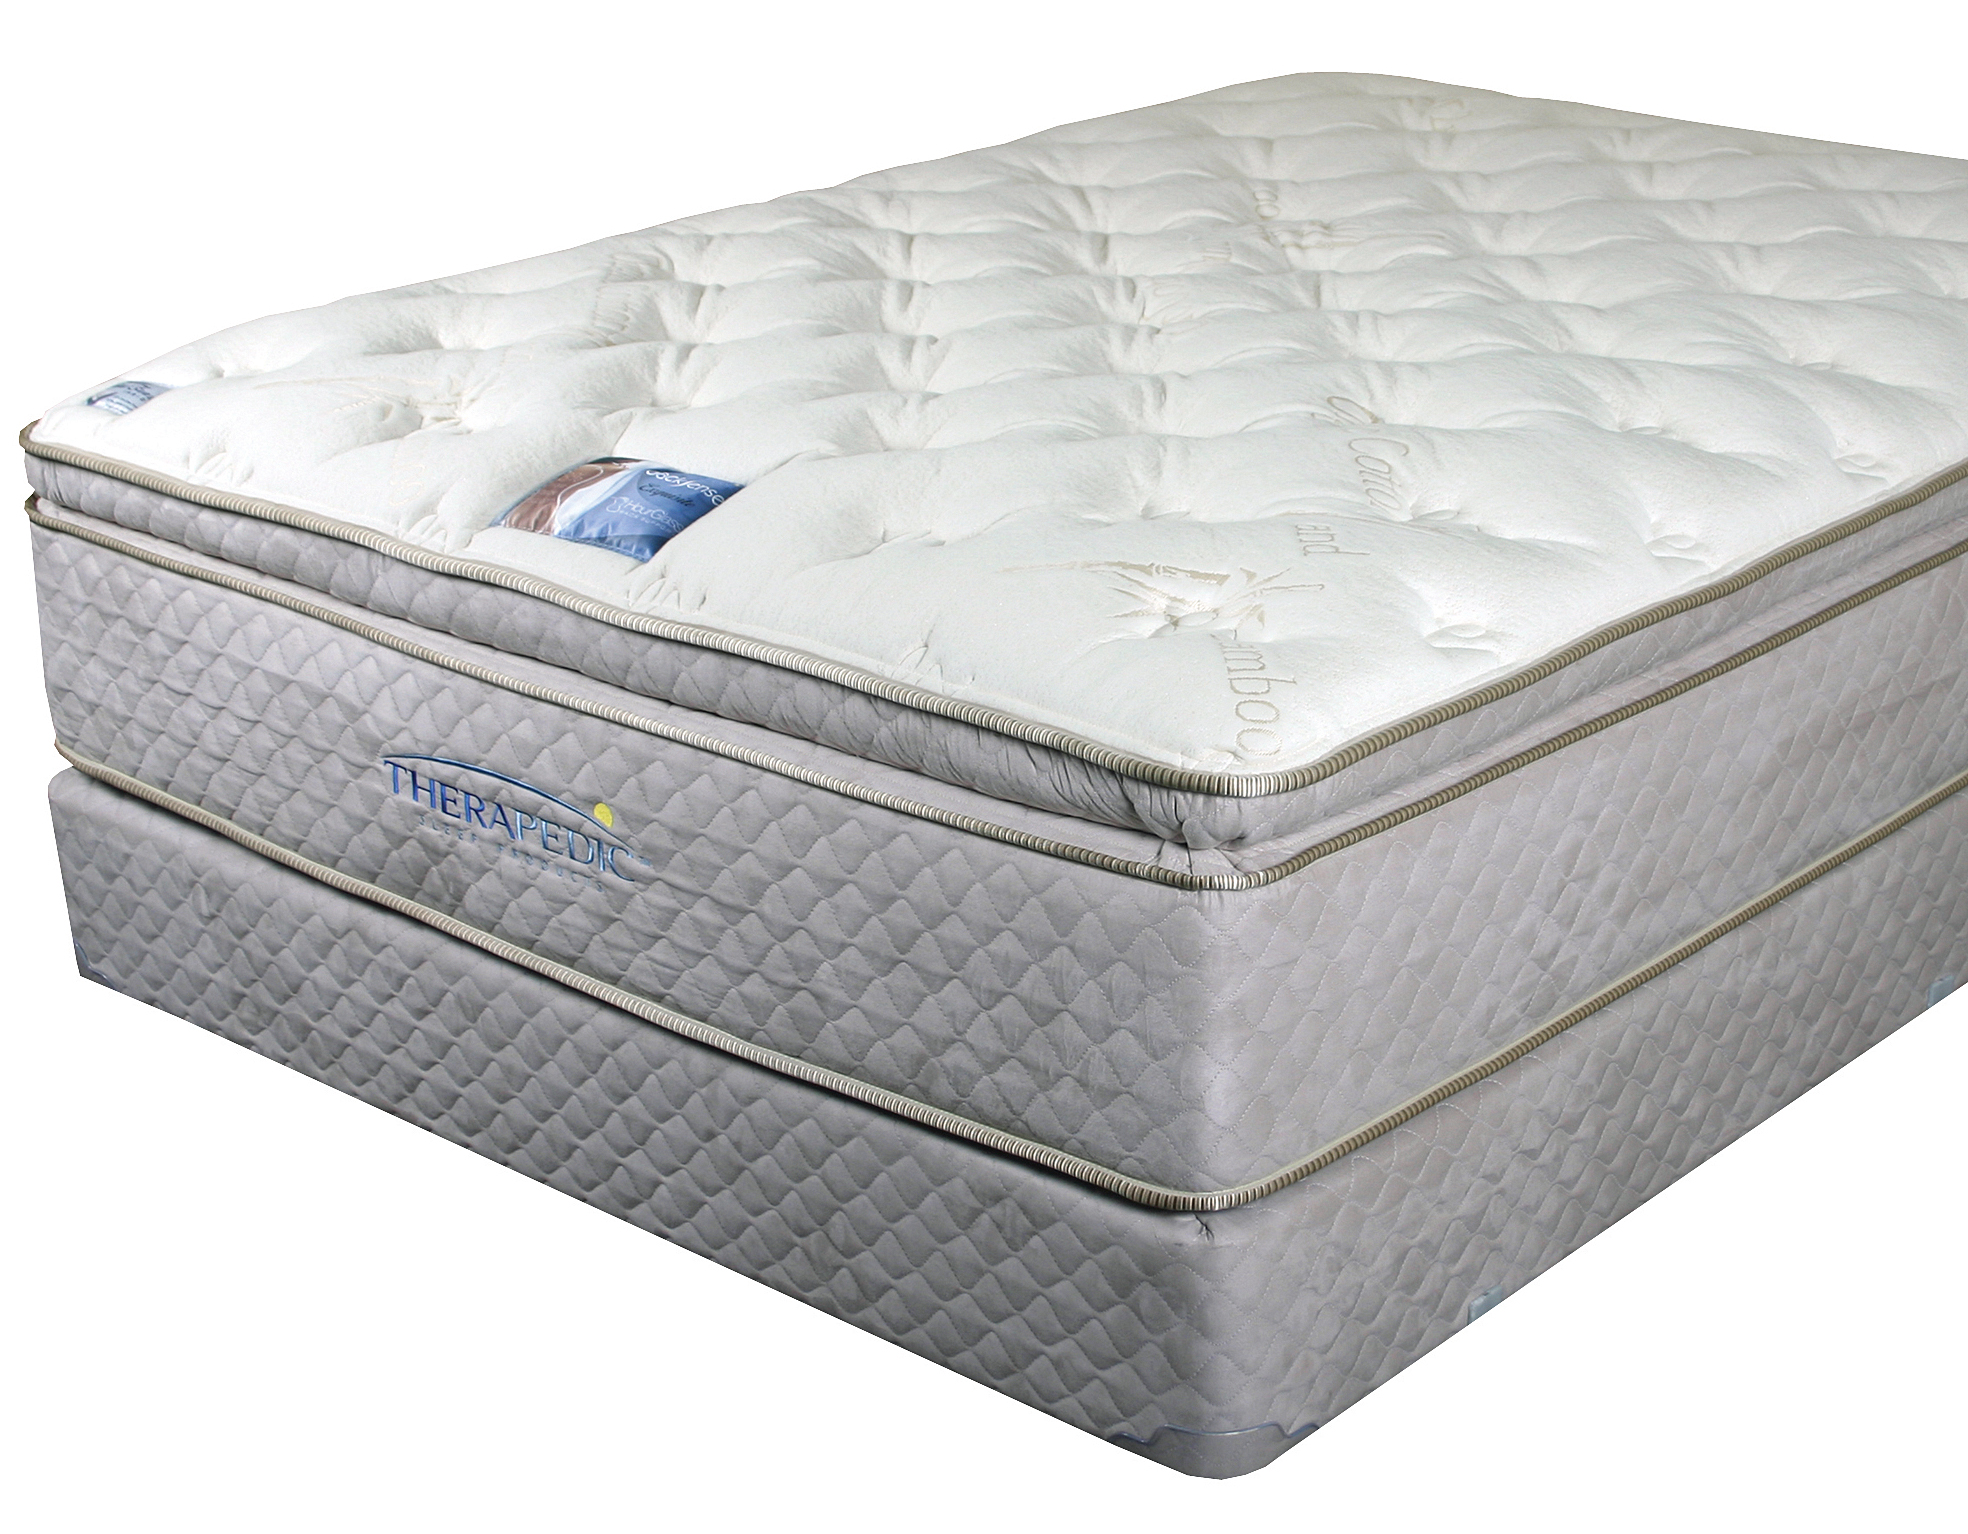 Serta Icomfort Reviews >> Therapedic BackSense Elite - Plush Latex Pillow Top Mattresses